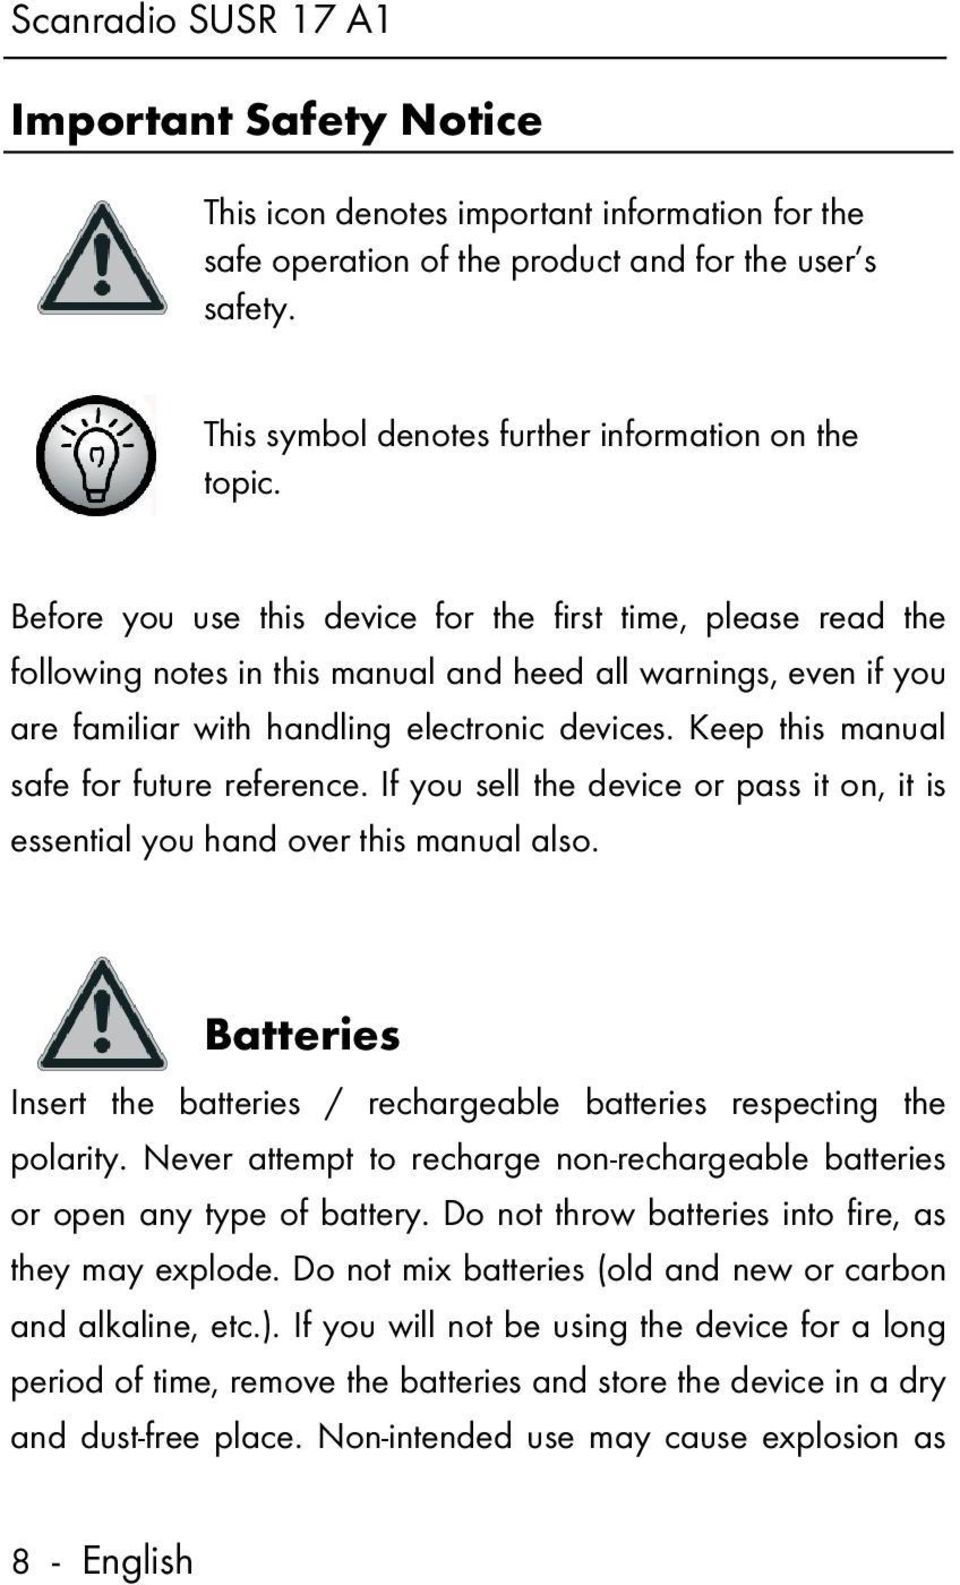 Before you use this device for the first time, please read the following notes in this manual and heed all warnings, even if you are familiar with handling electronic devices.